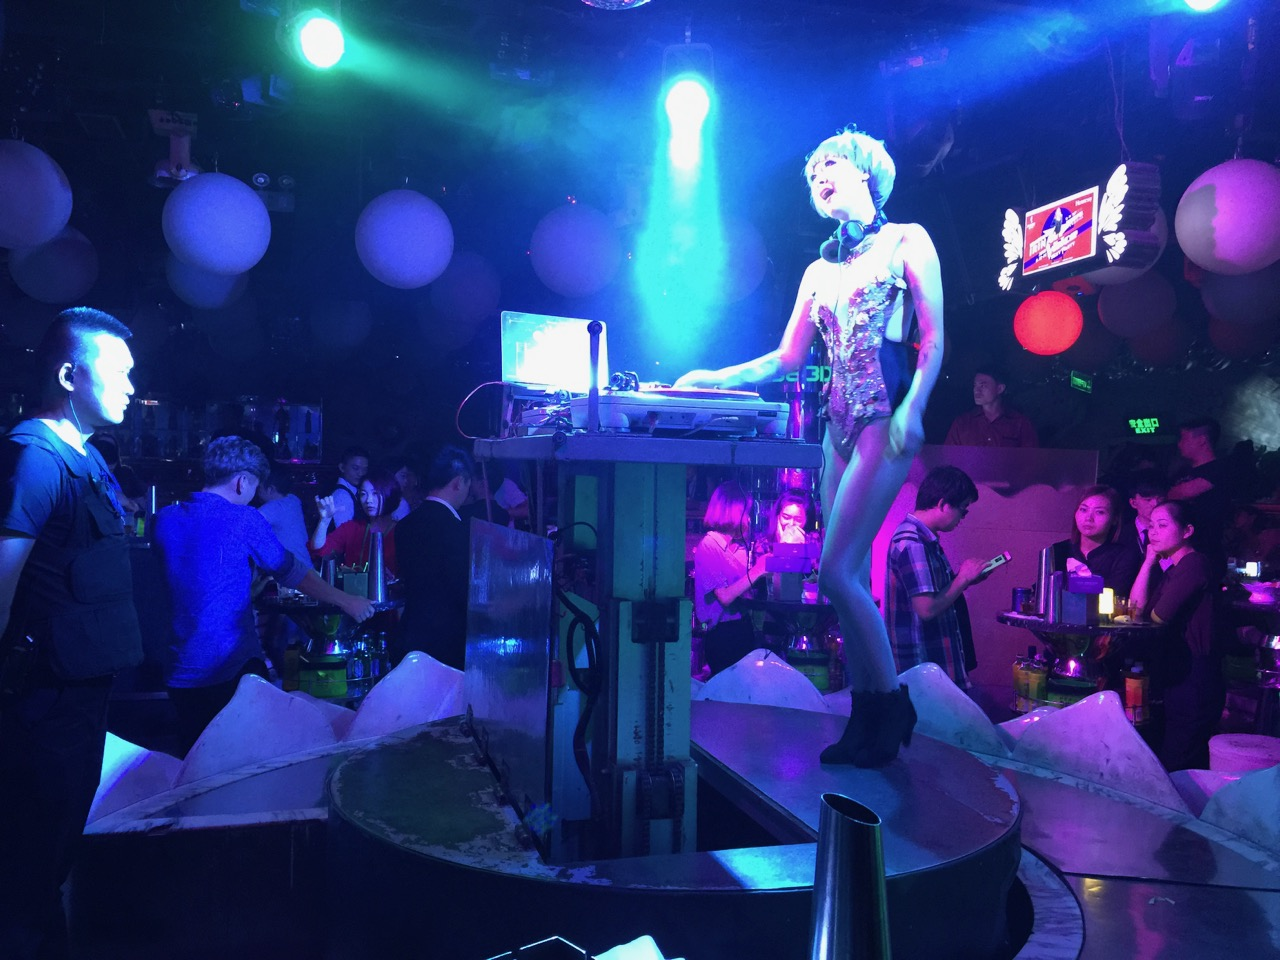 Female DJ dressed provocatively at Phebe 3D. The DJs call the shots in this club.